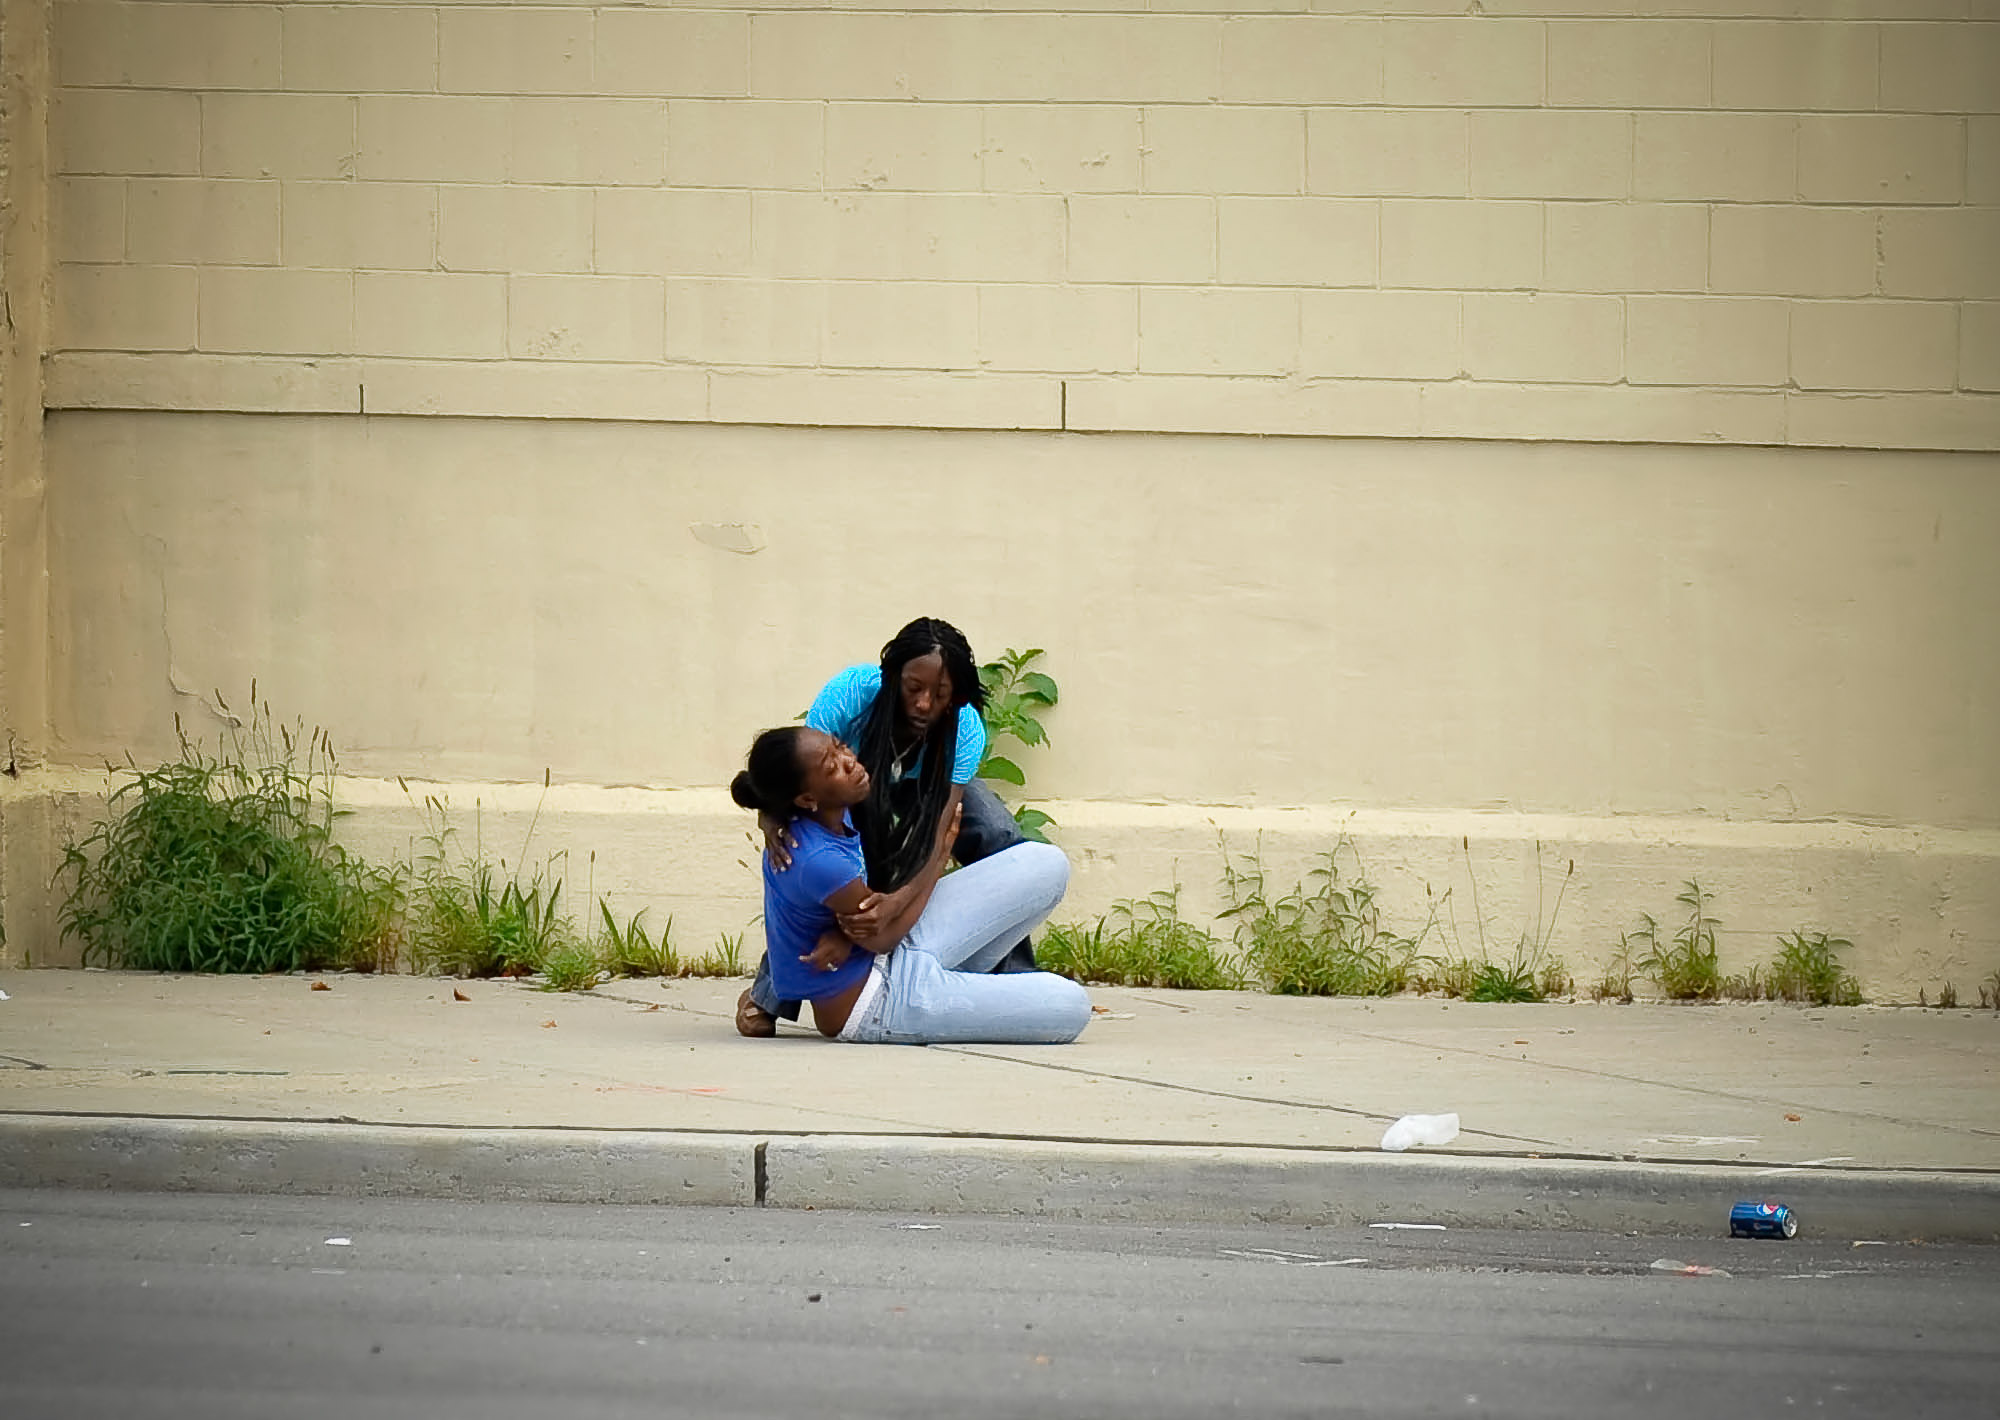 The daughter of a shooting victim collapses in a friend's arms on Elizabeth Ave after hearing her mother was murdered during a drive-byshooting at Meeker and Elizabeth streets in Newark, NJ.